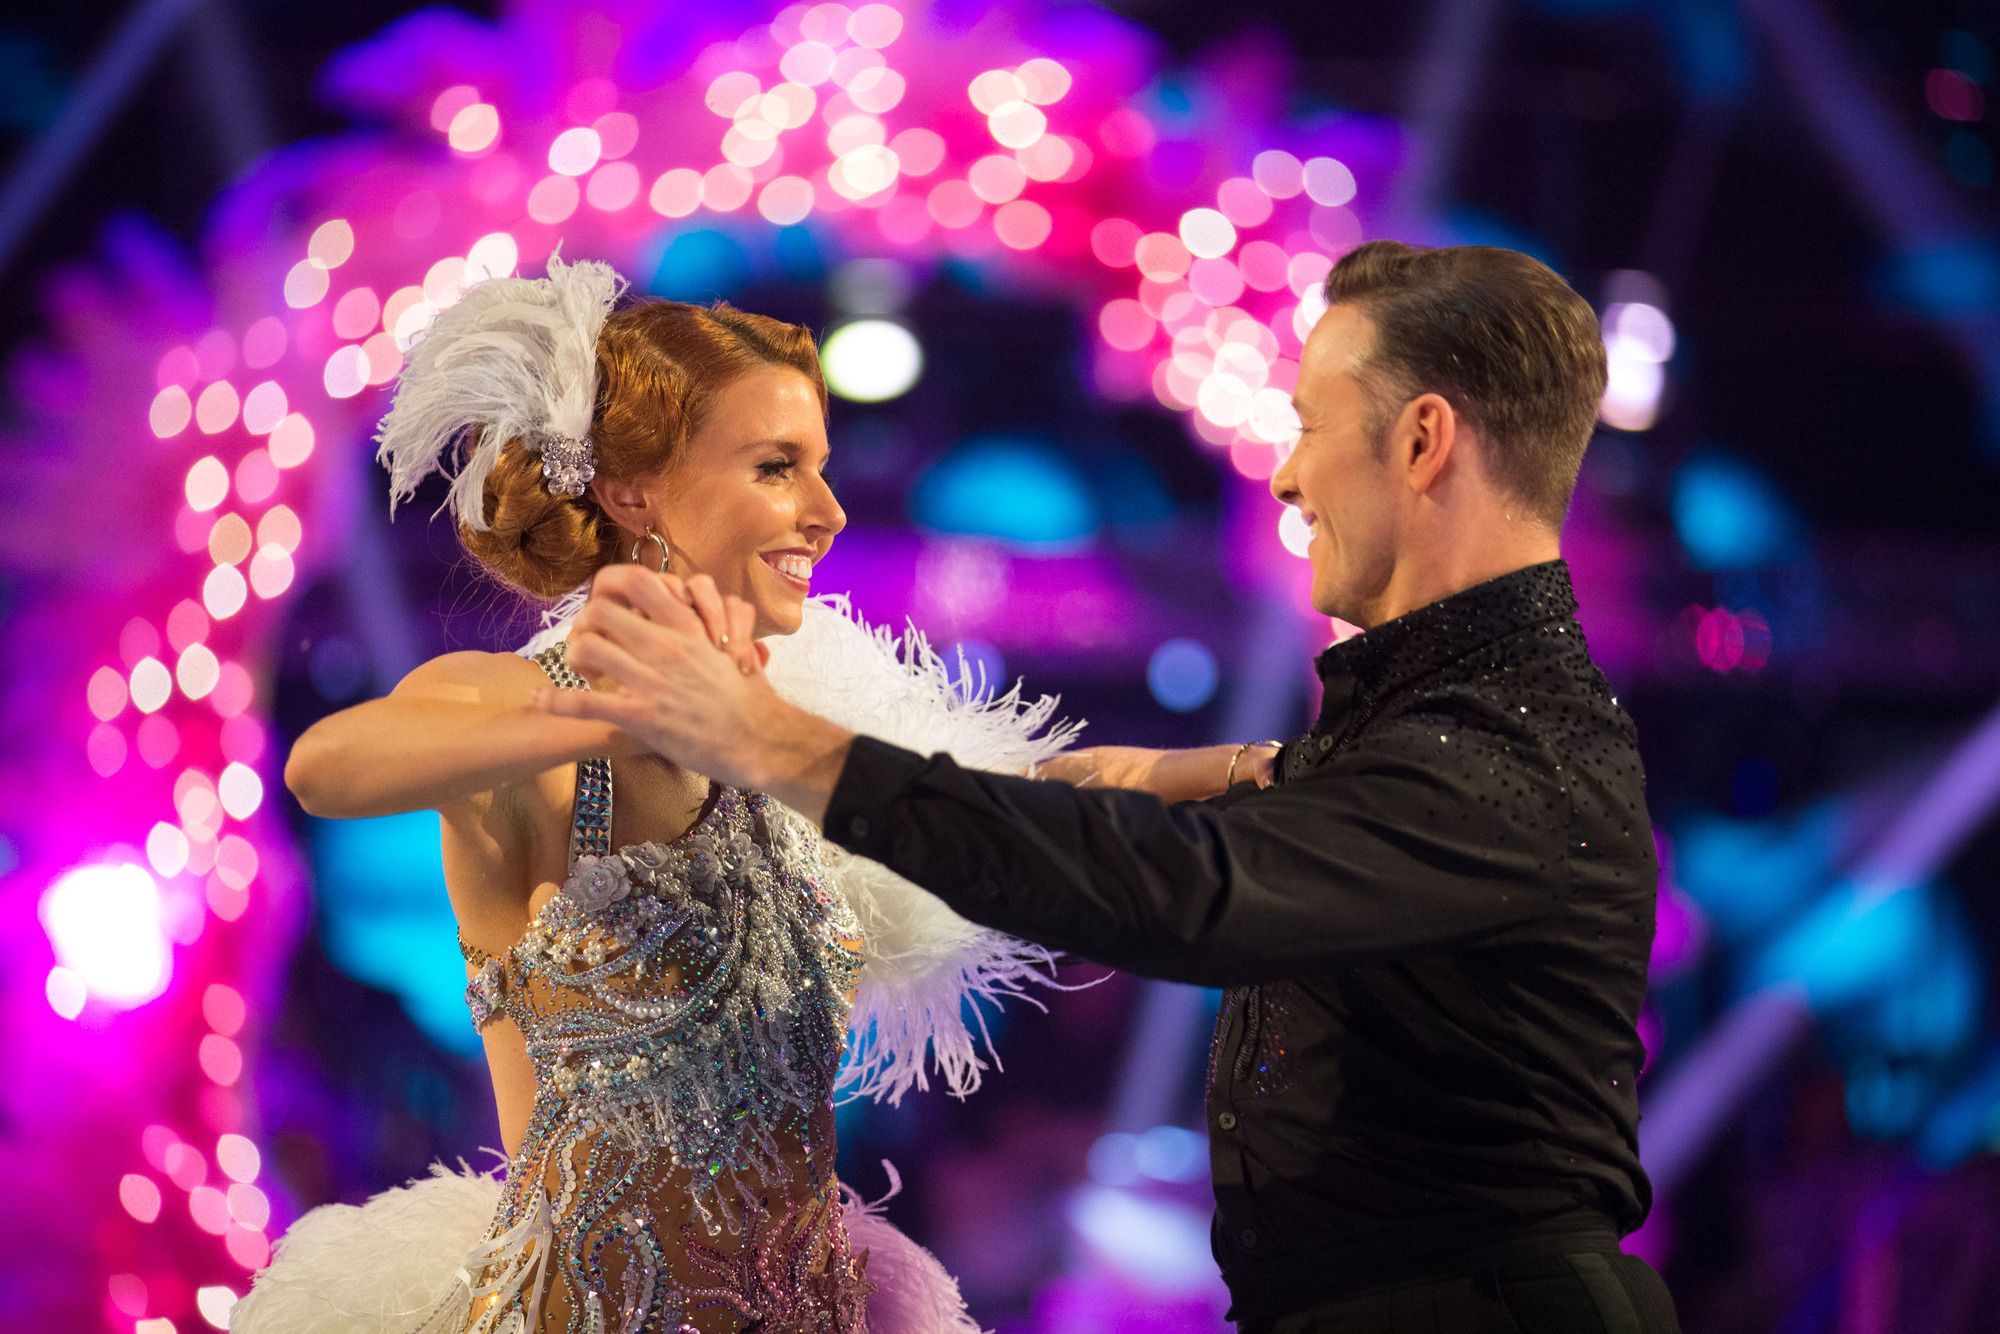 Strictly seems to have made one very intentional move with its 2019 line-up